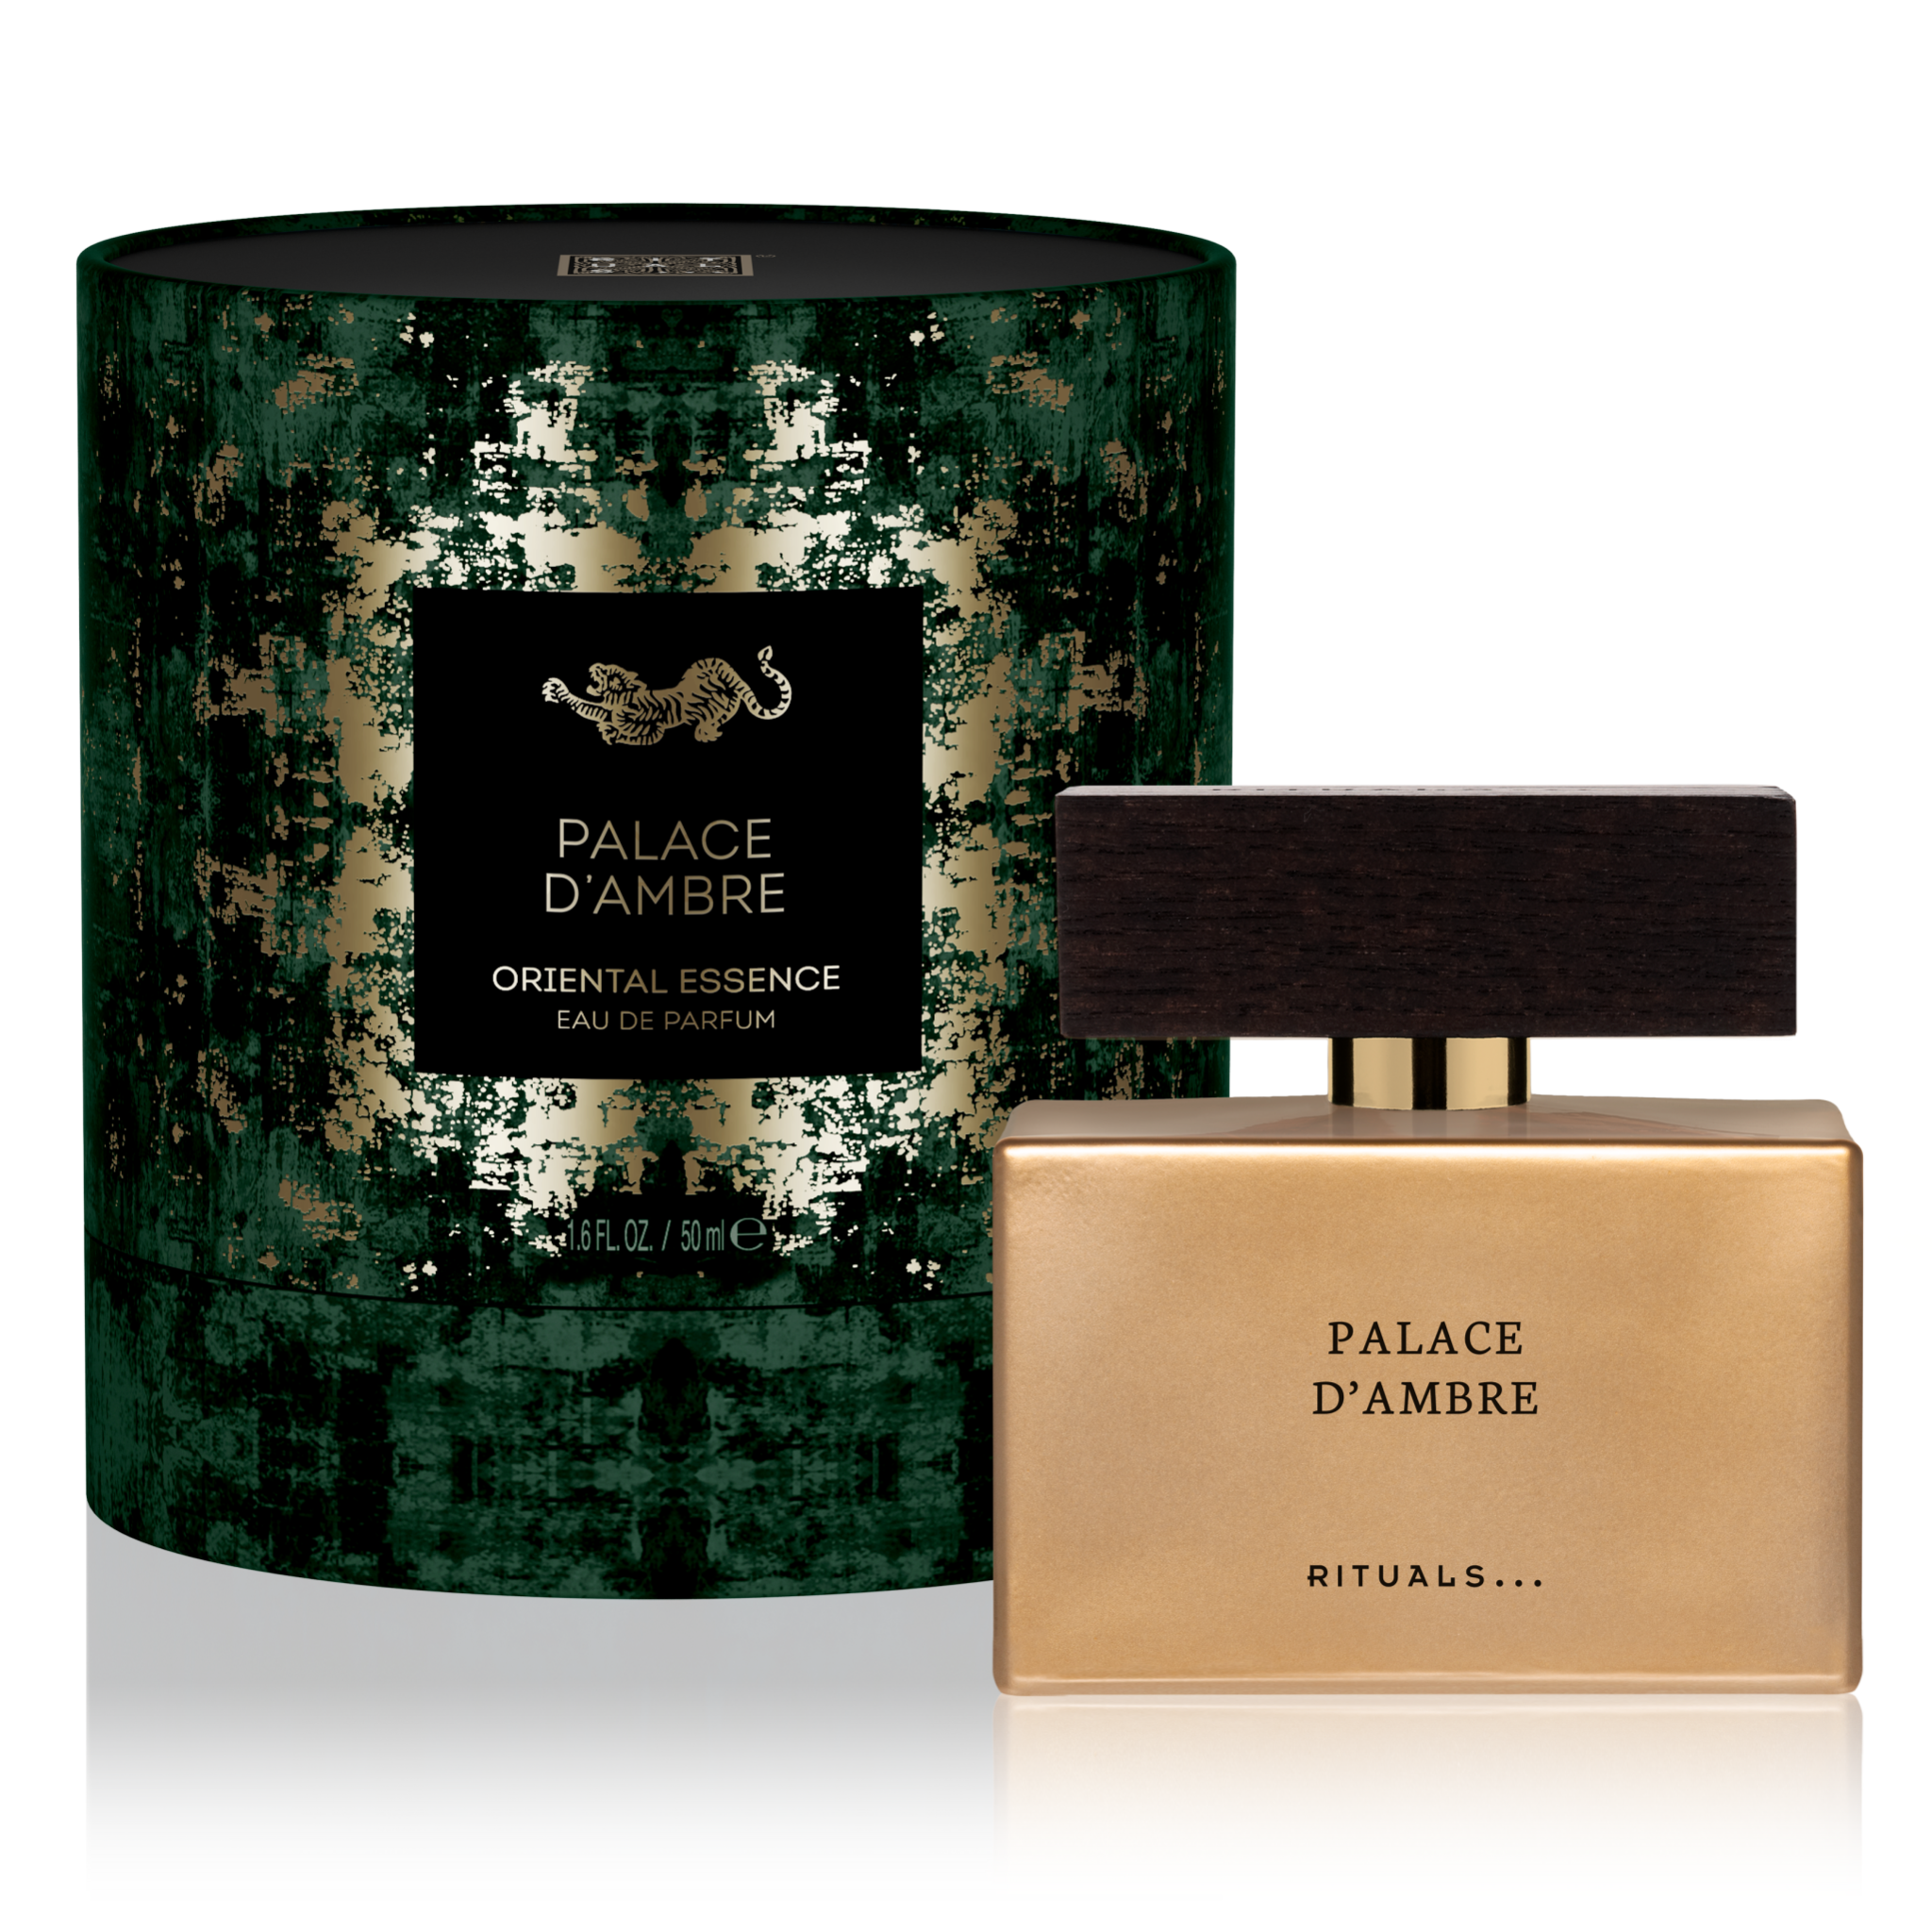 Composed Of Elemi Amber And Musk This Warm And Elusive Perfume Seduces Your Senses Behind An Oriental Veil Perfume Recipes Gucci Perfume Perfume